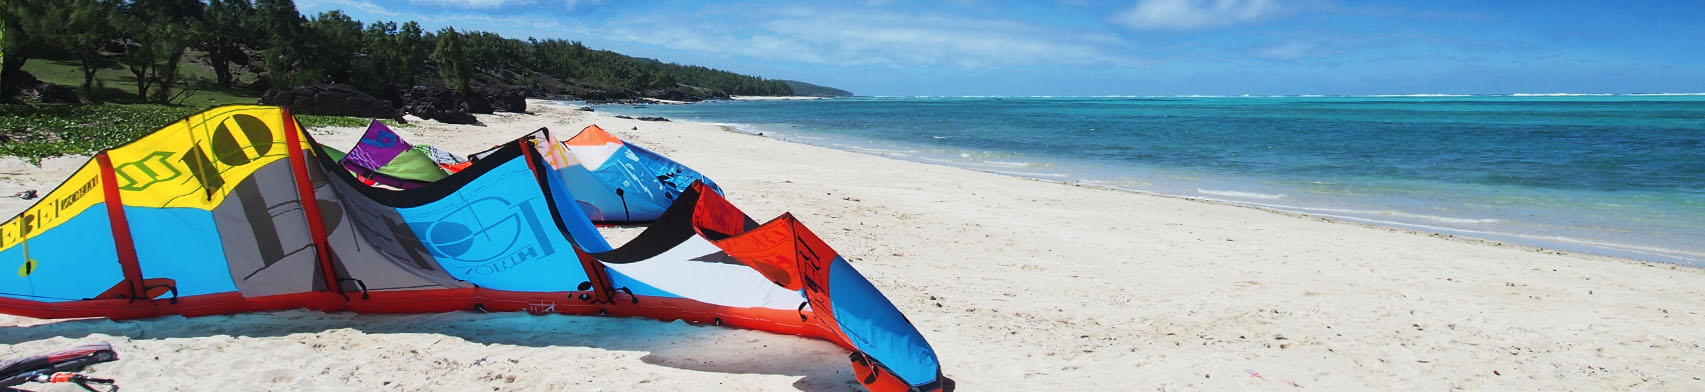 kite_beach_rodrigues